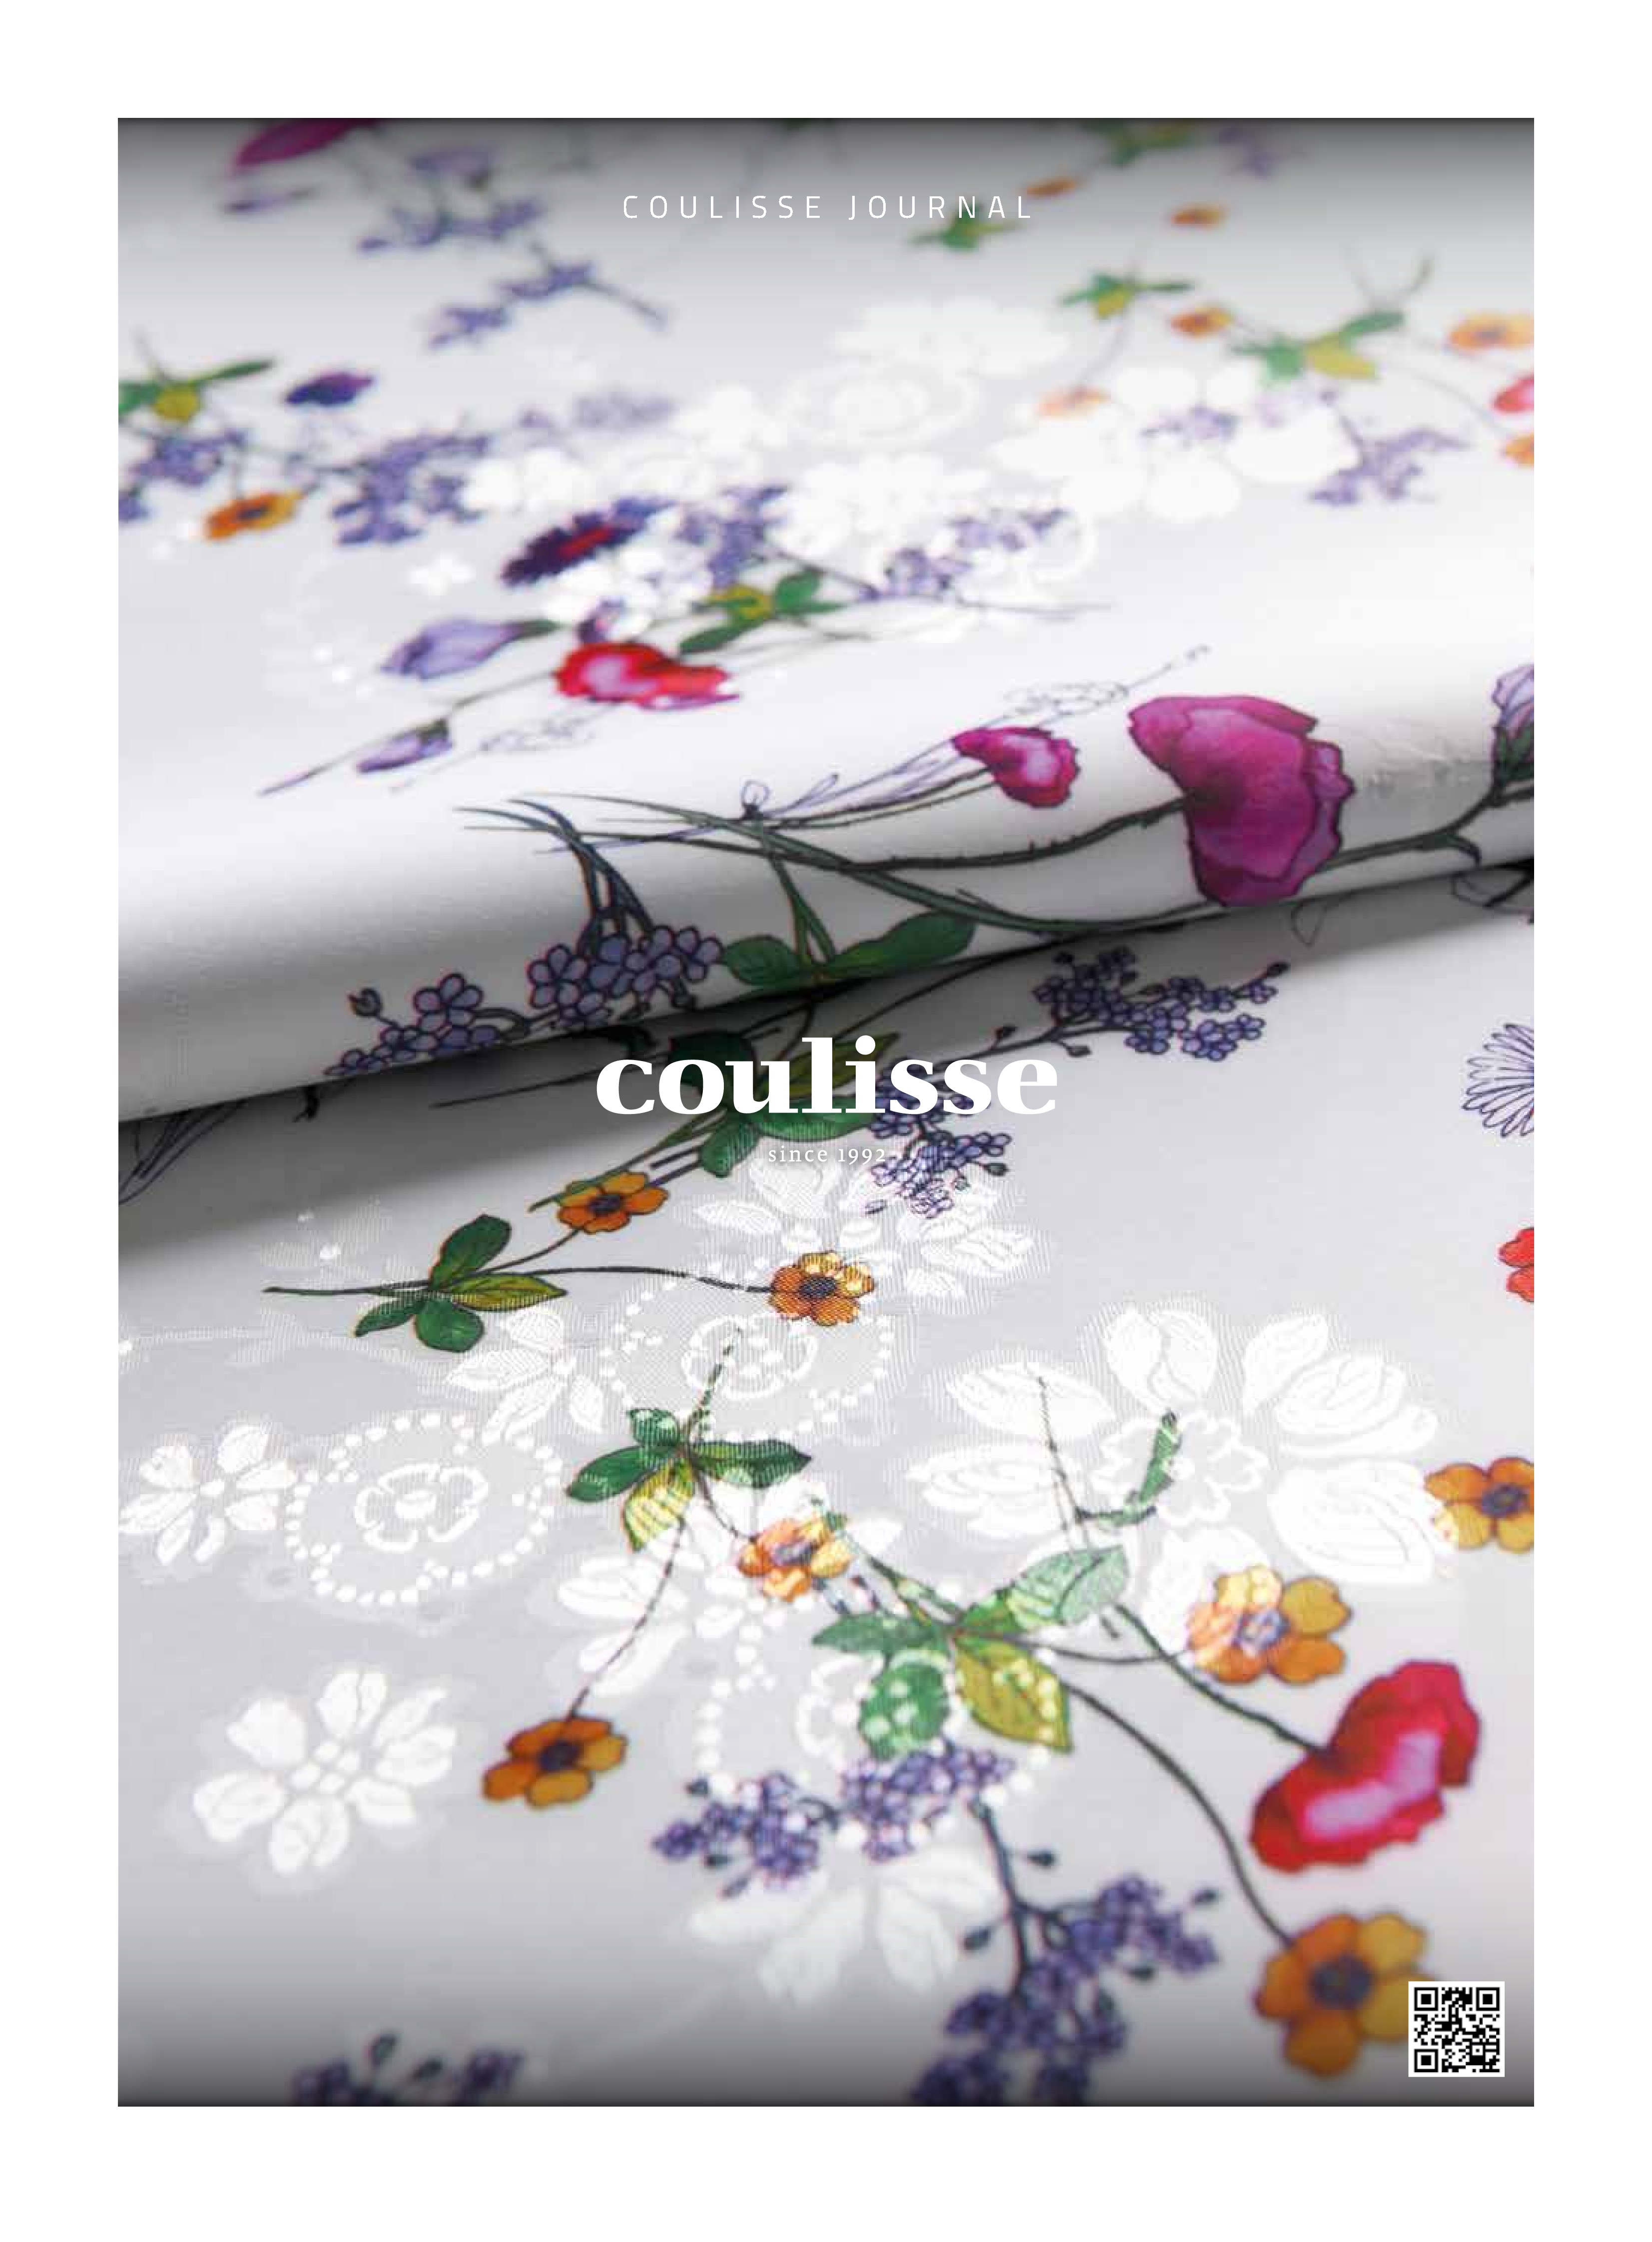 Coulisse journal 4 summer 2016